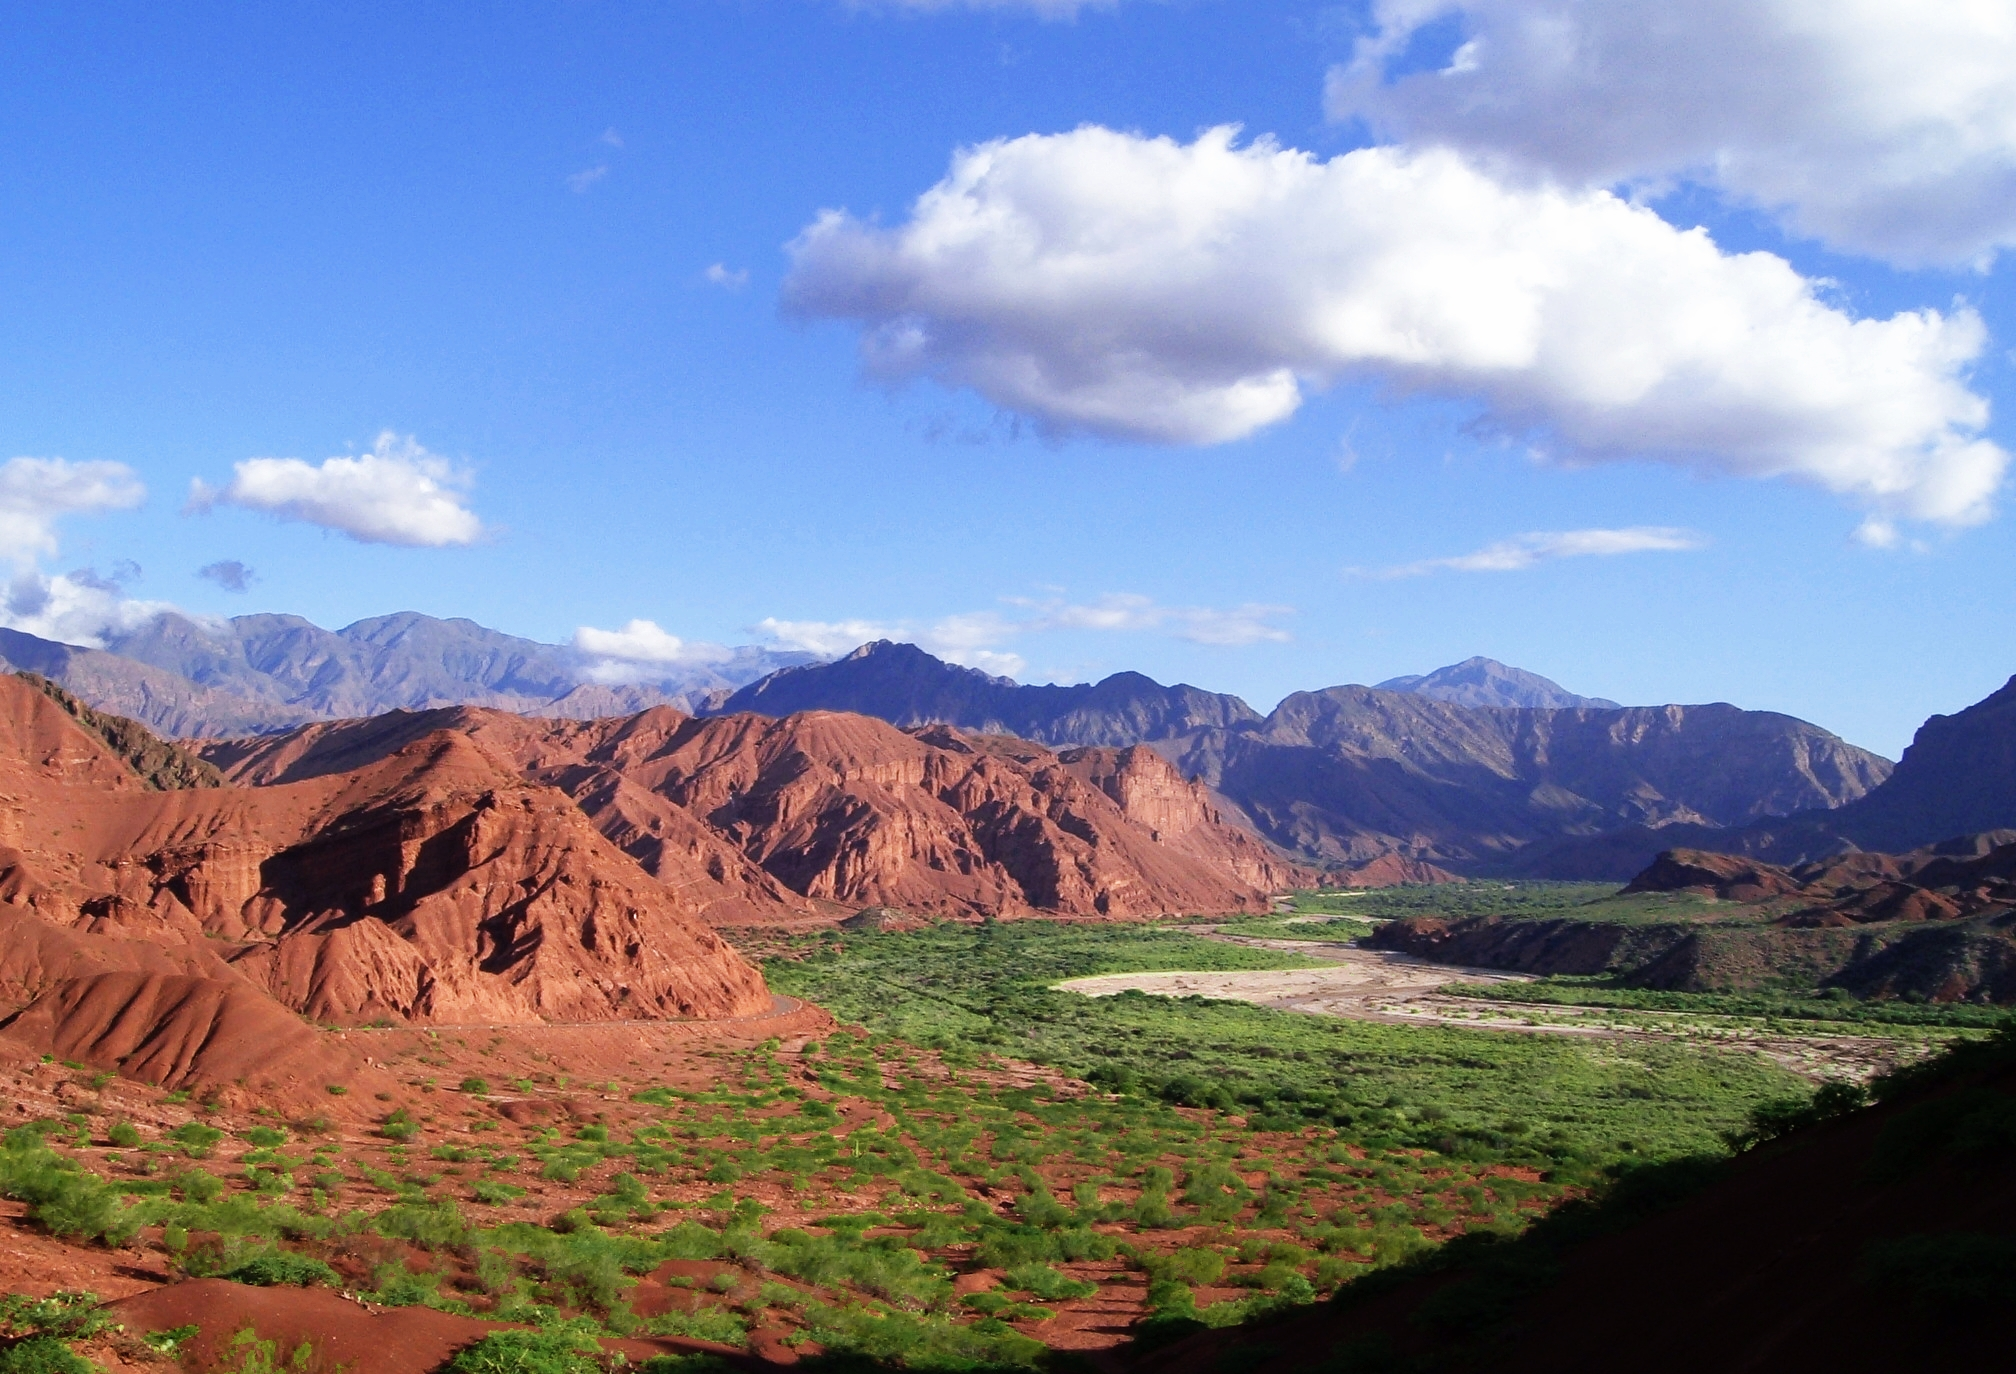 Salta Argentina  City pictures : Cafayate Salta Argentina | Flickr Photo Sharing!